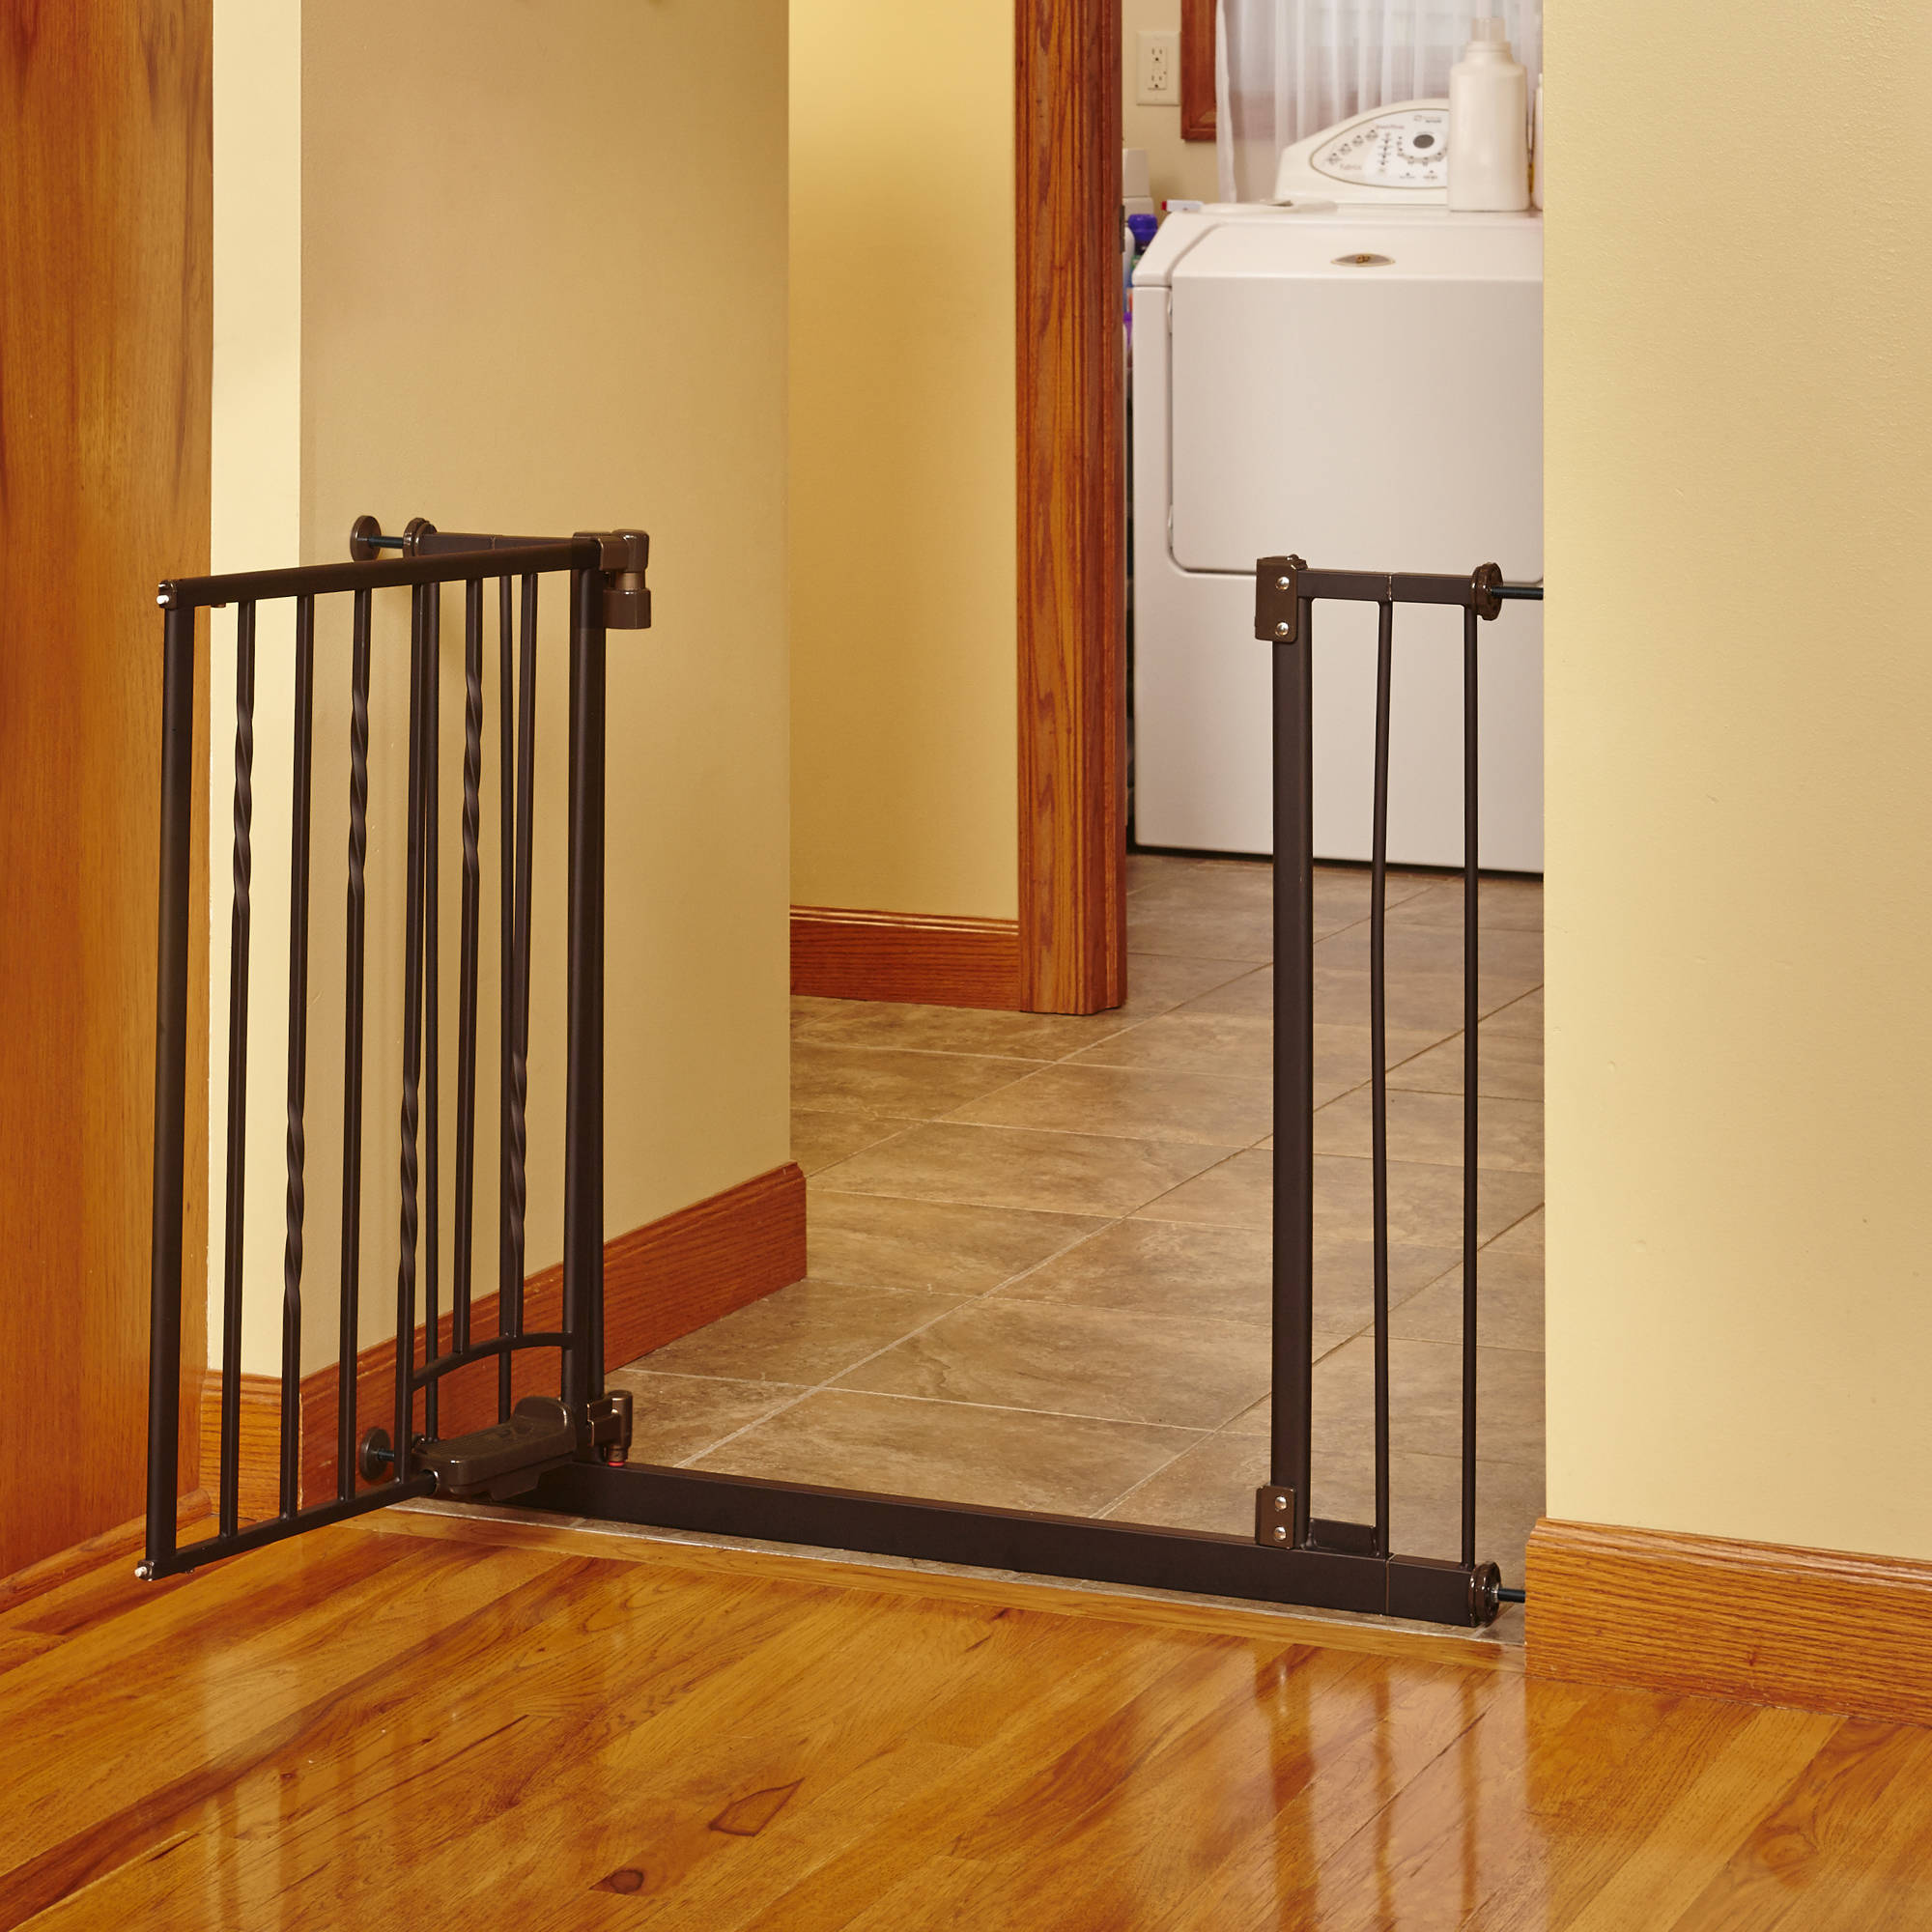 north states bronze step n go foot pedal baby gate 31 25